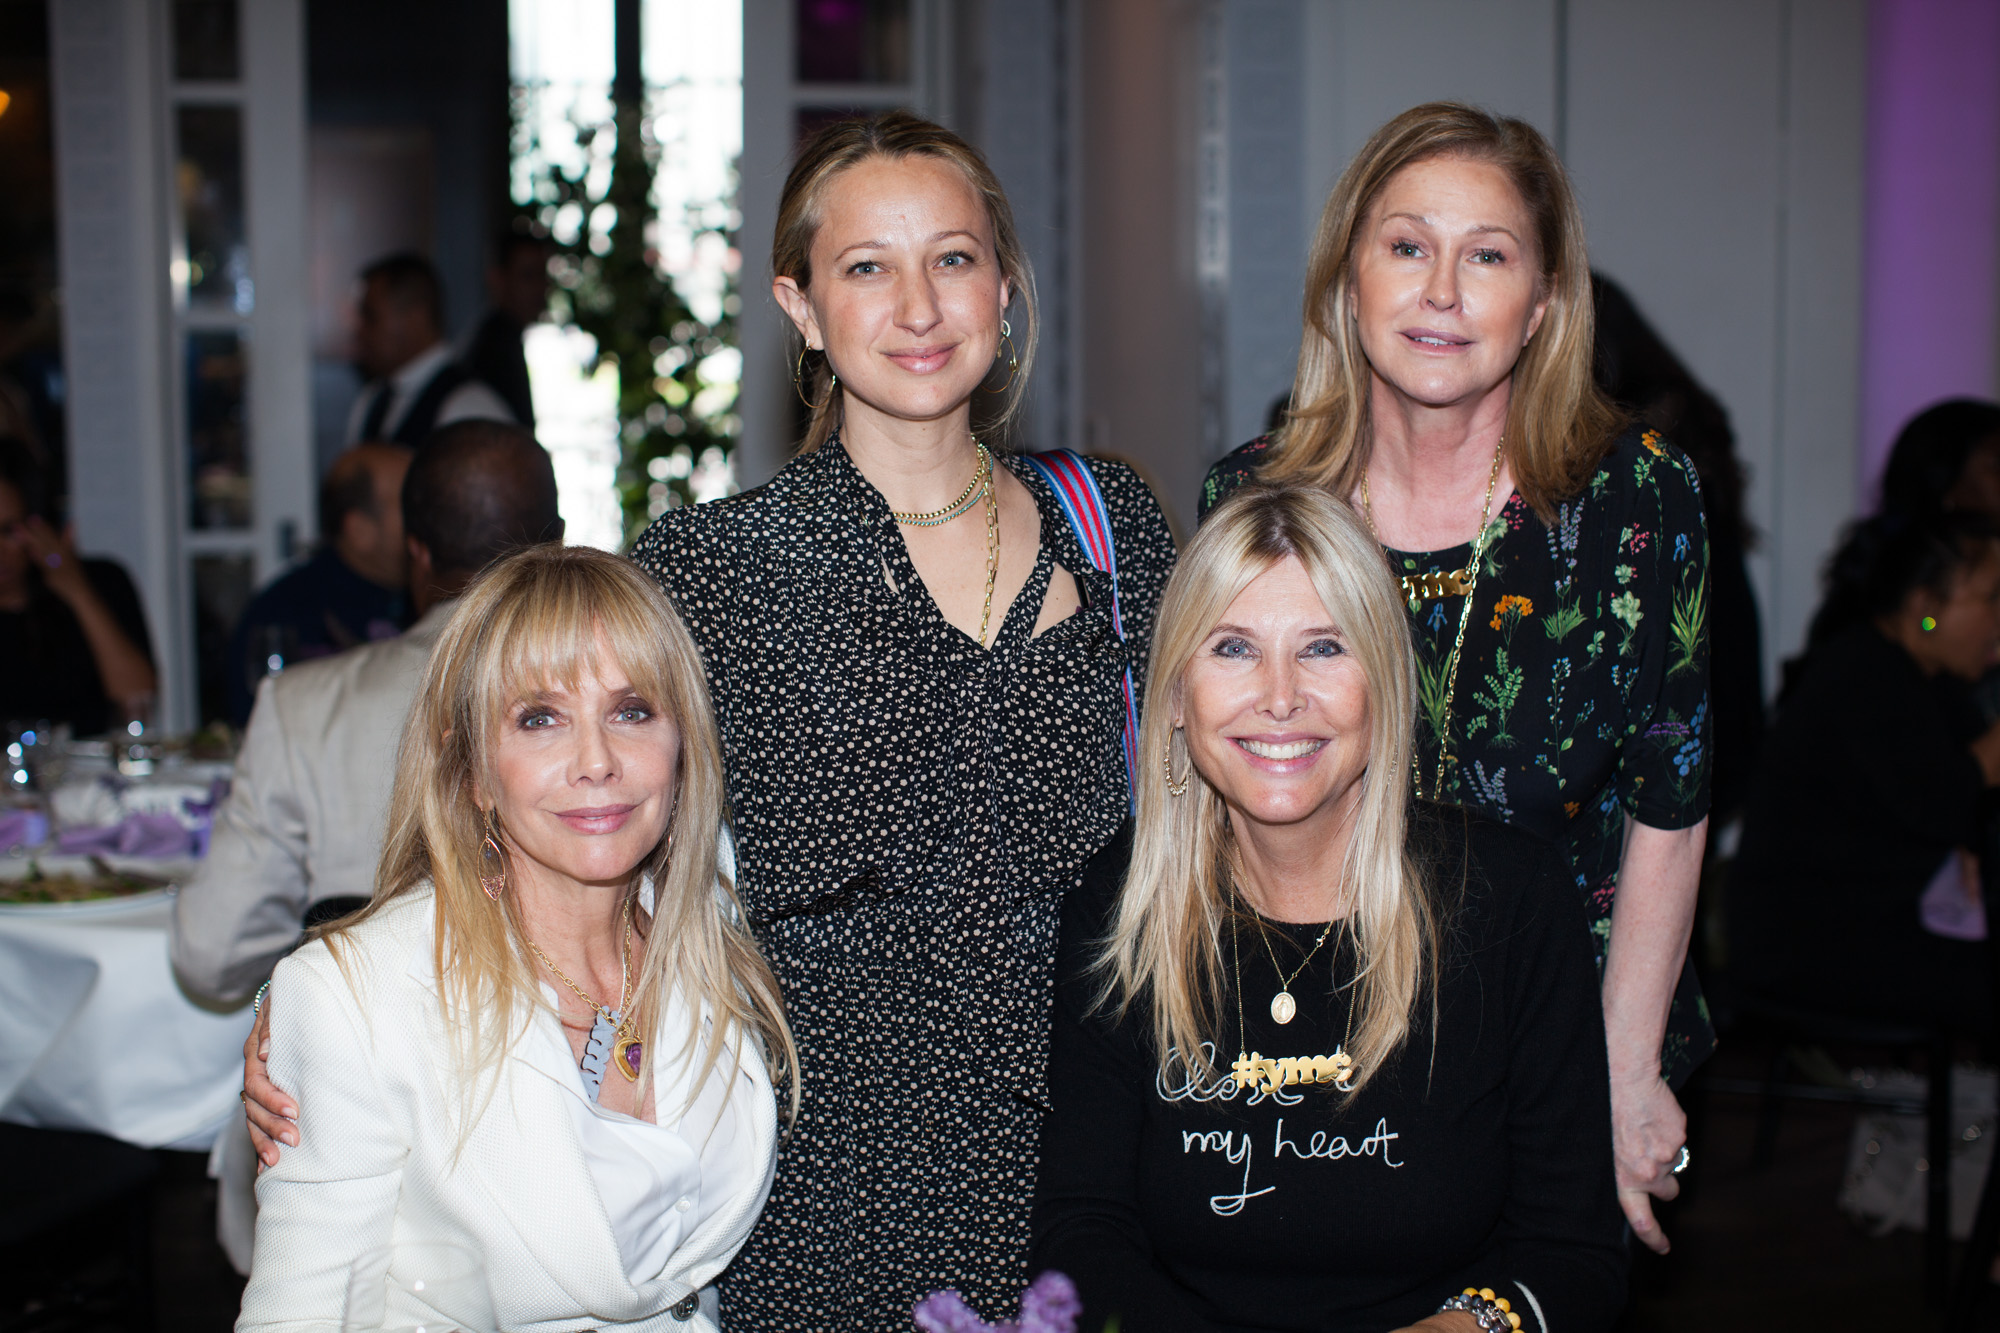 Rosanna Arquette, Jennifer Meyer, and Irena Medavoy